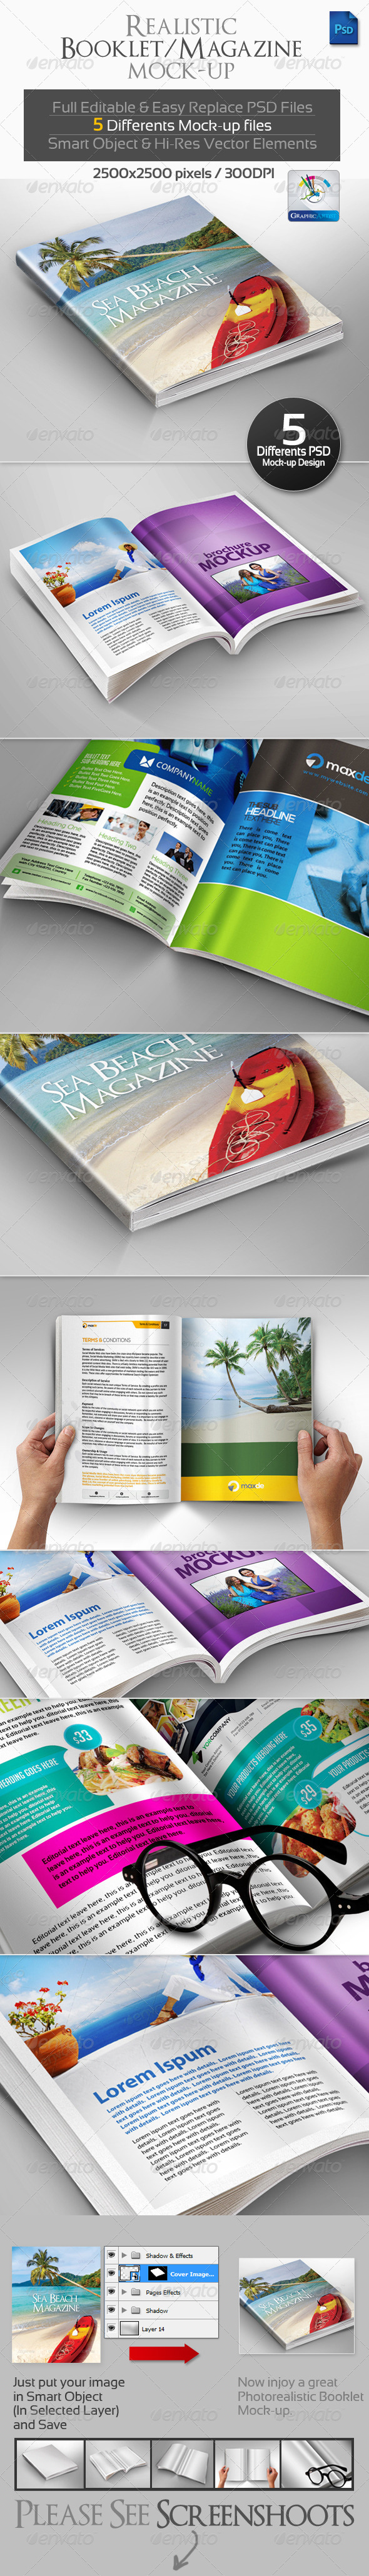 GraphicRiver Realistic Booklet Magazine Mock-ups 3214770